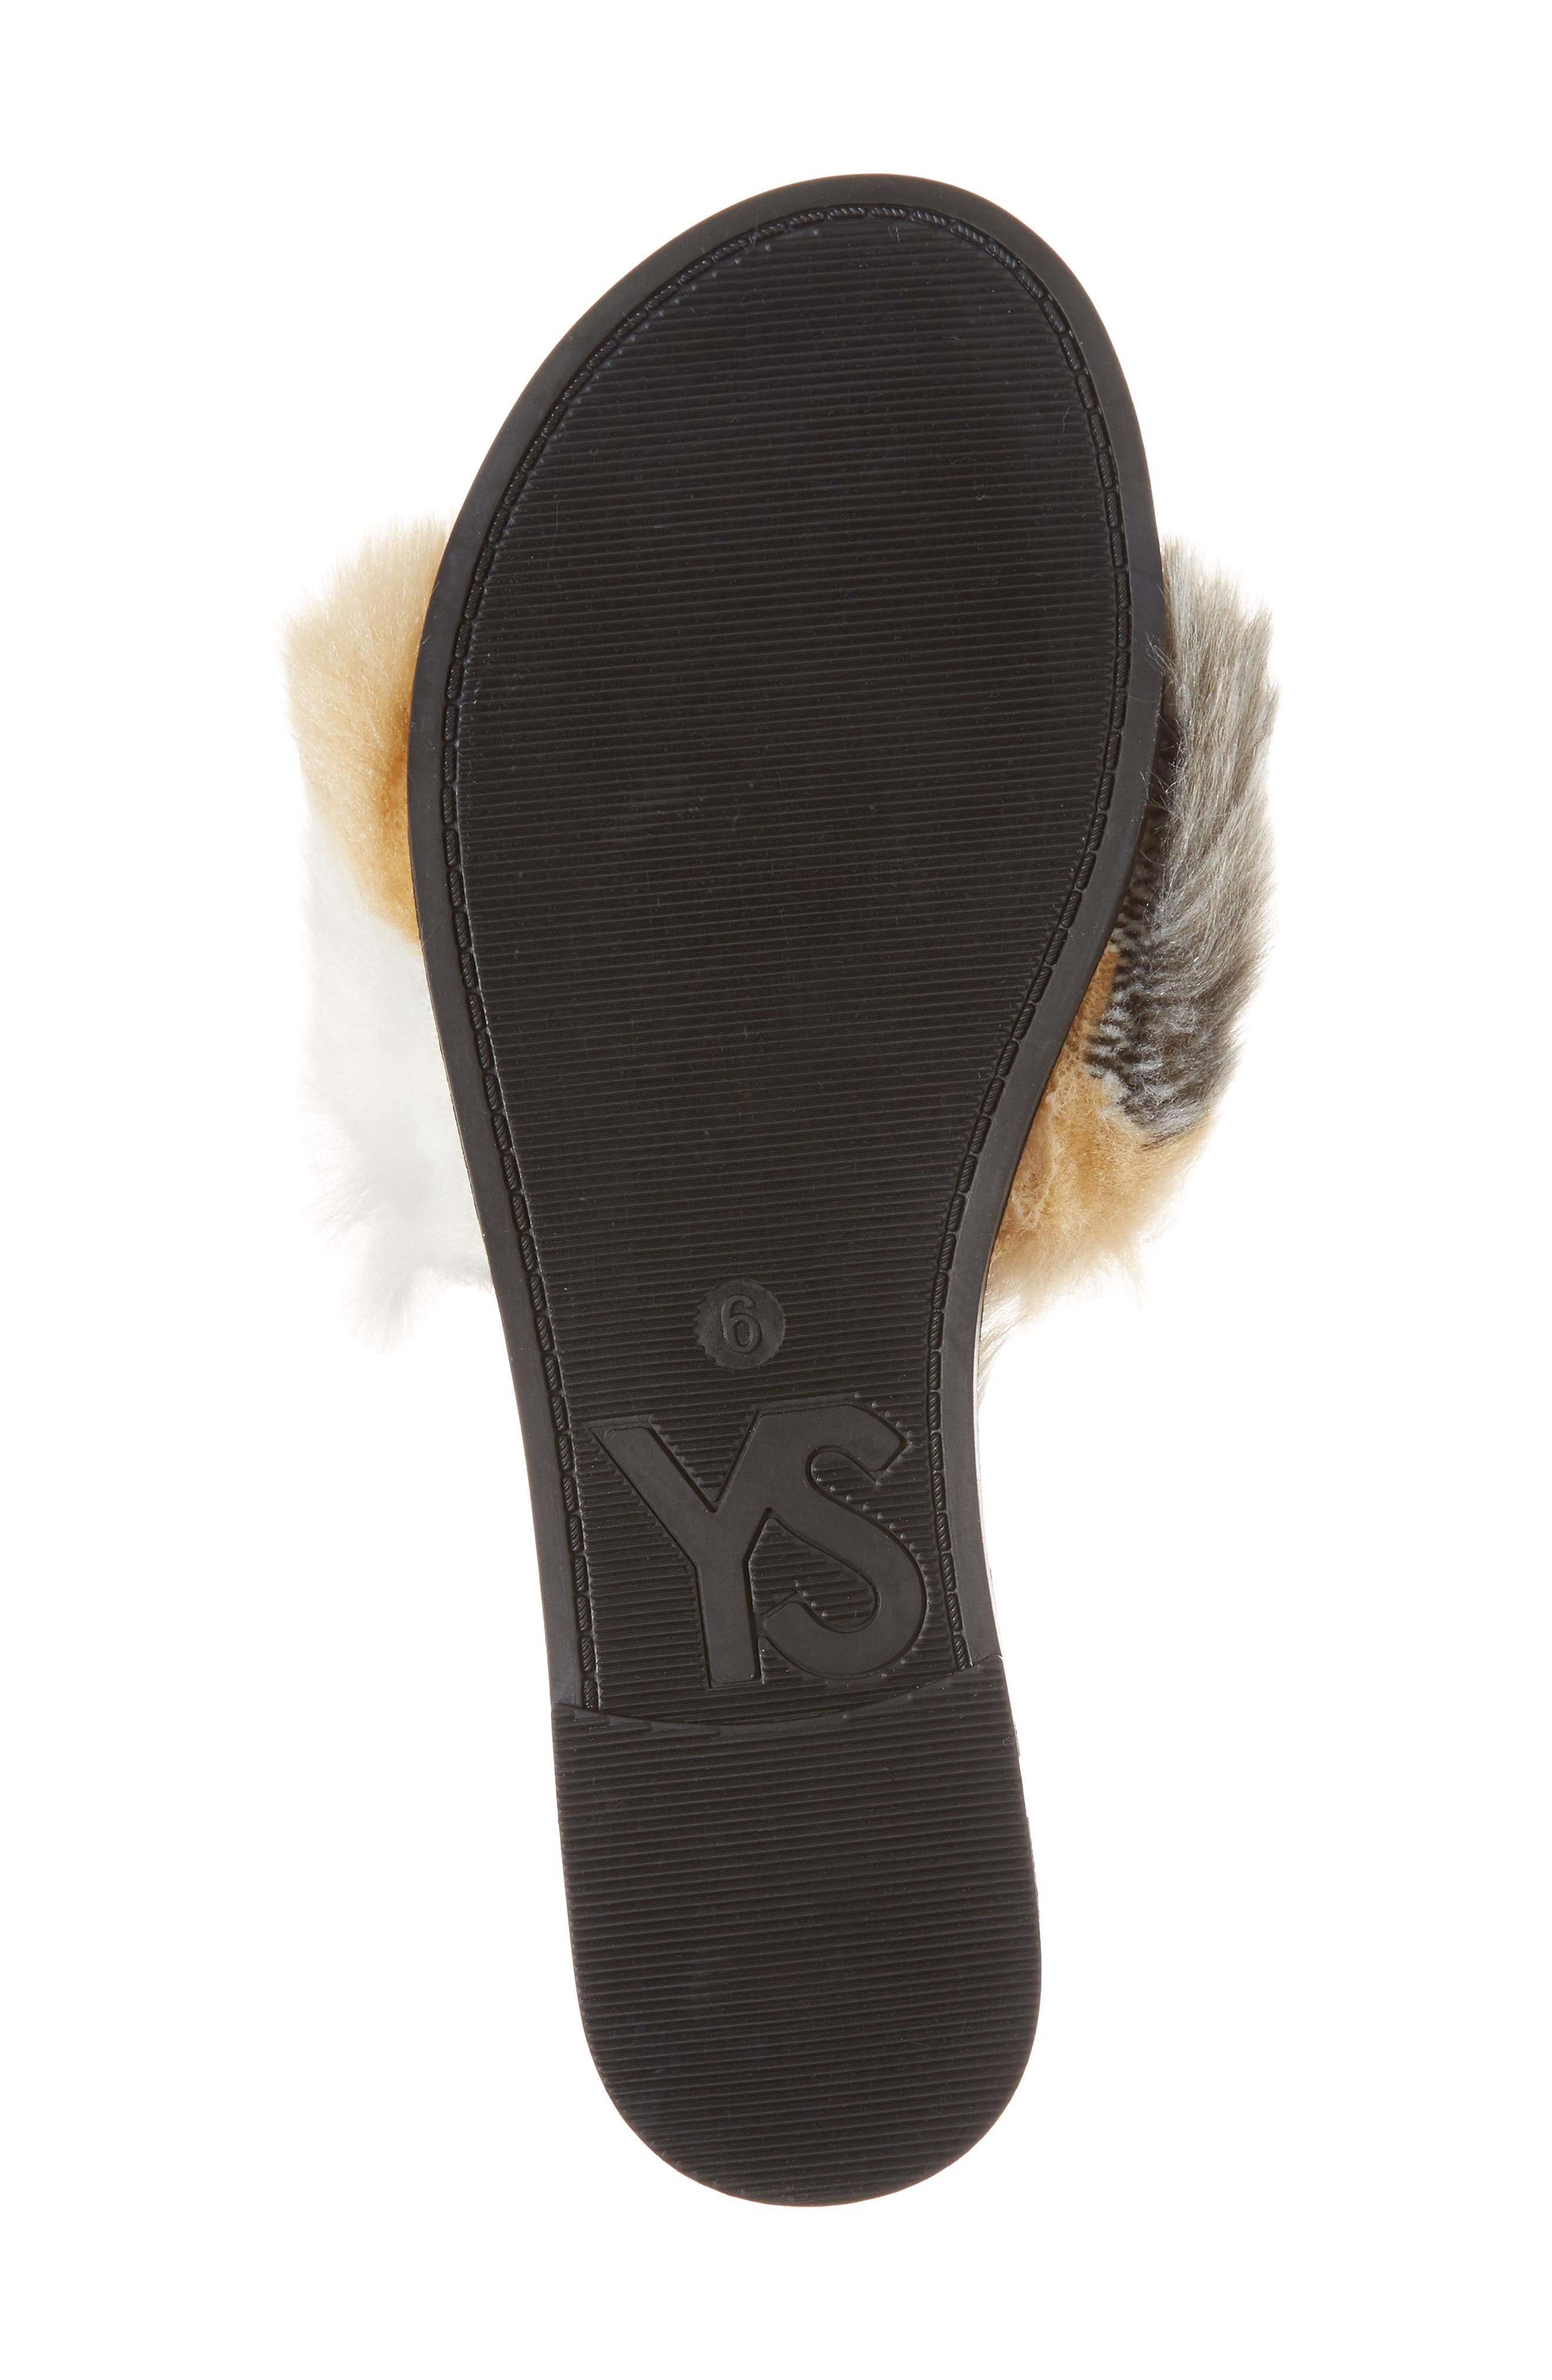 Rose Faux Fur Slide Sandal,                             Alternate thumbnail 6, color,                             Natural/ Black Faux Fur